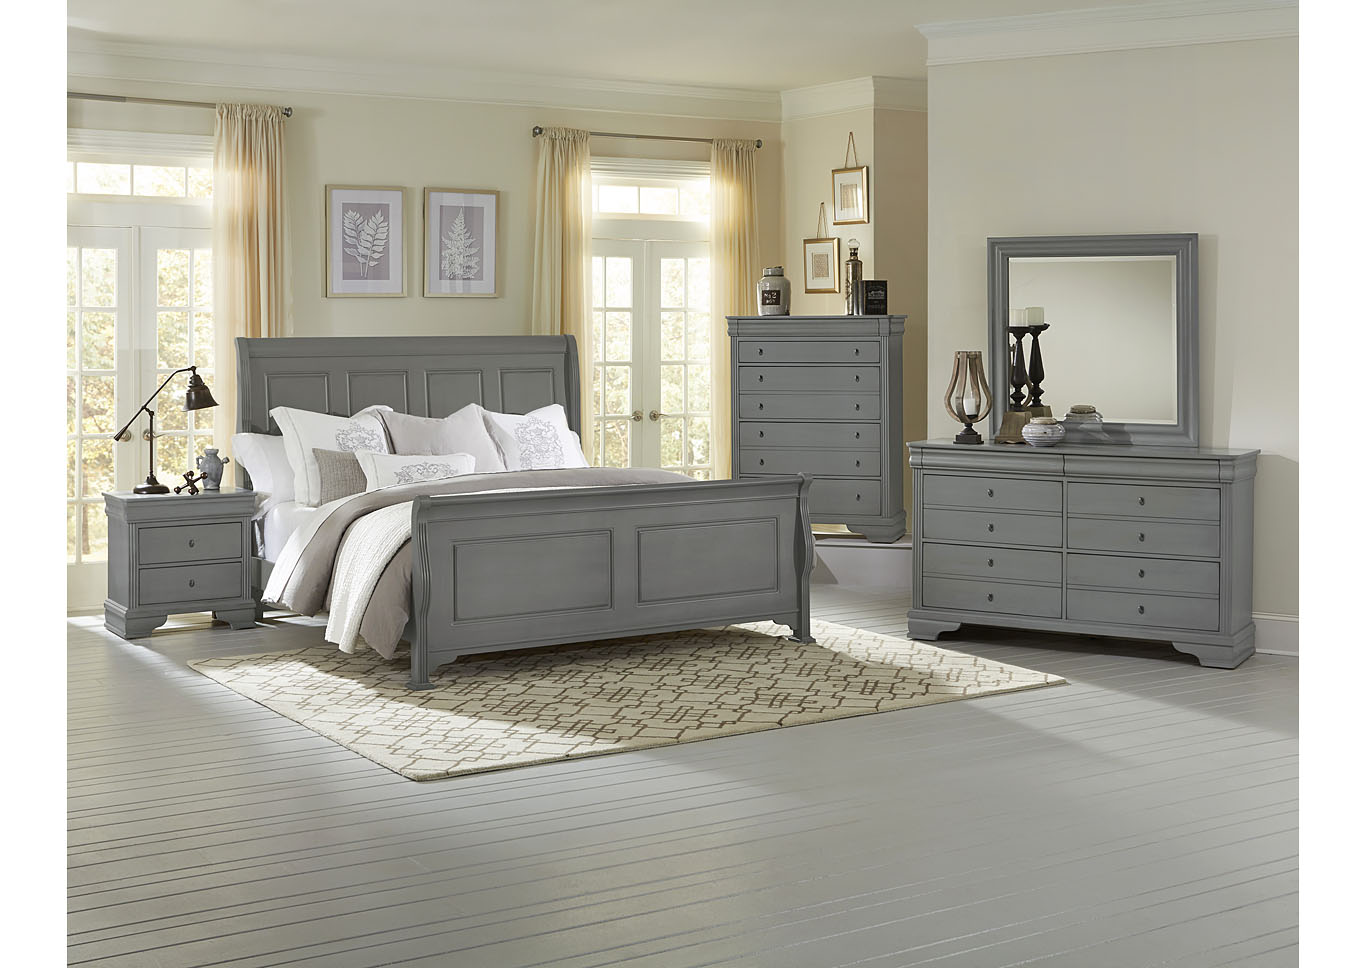 French Market Zinc Queen Poster Bed w/ Dresser, Mirror and Nightstand,Vaughan-Bassett